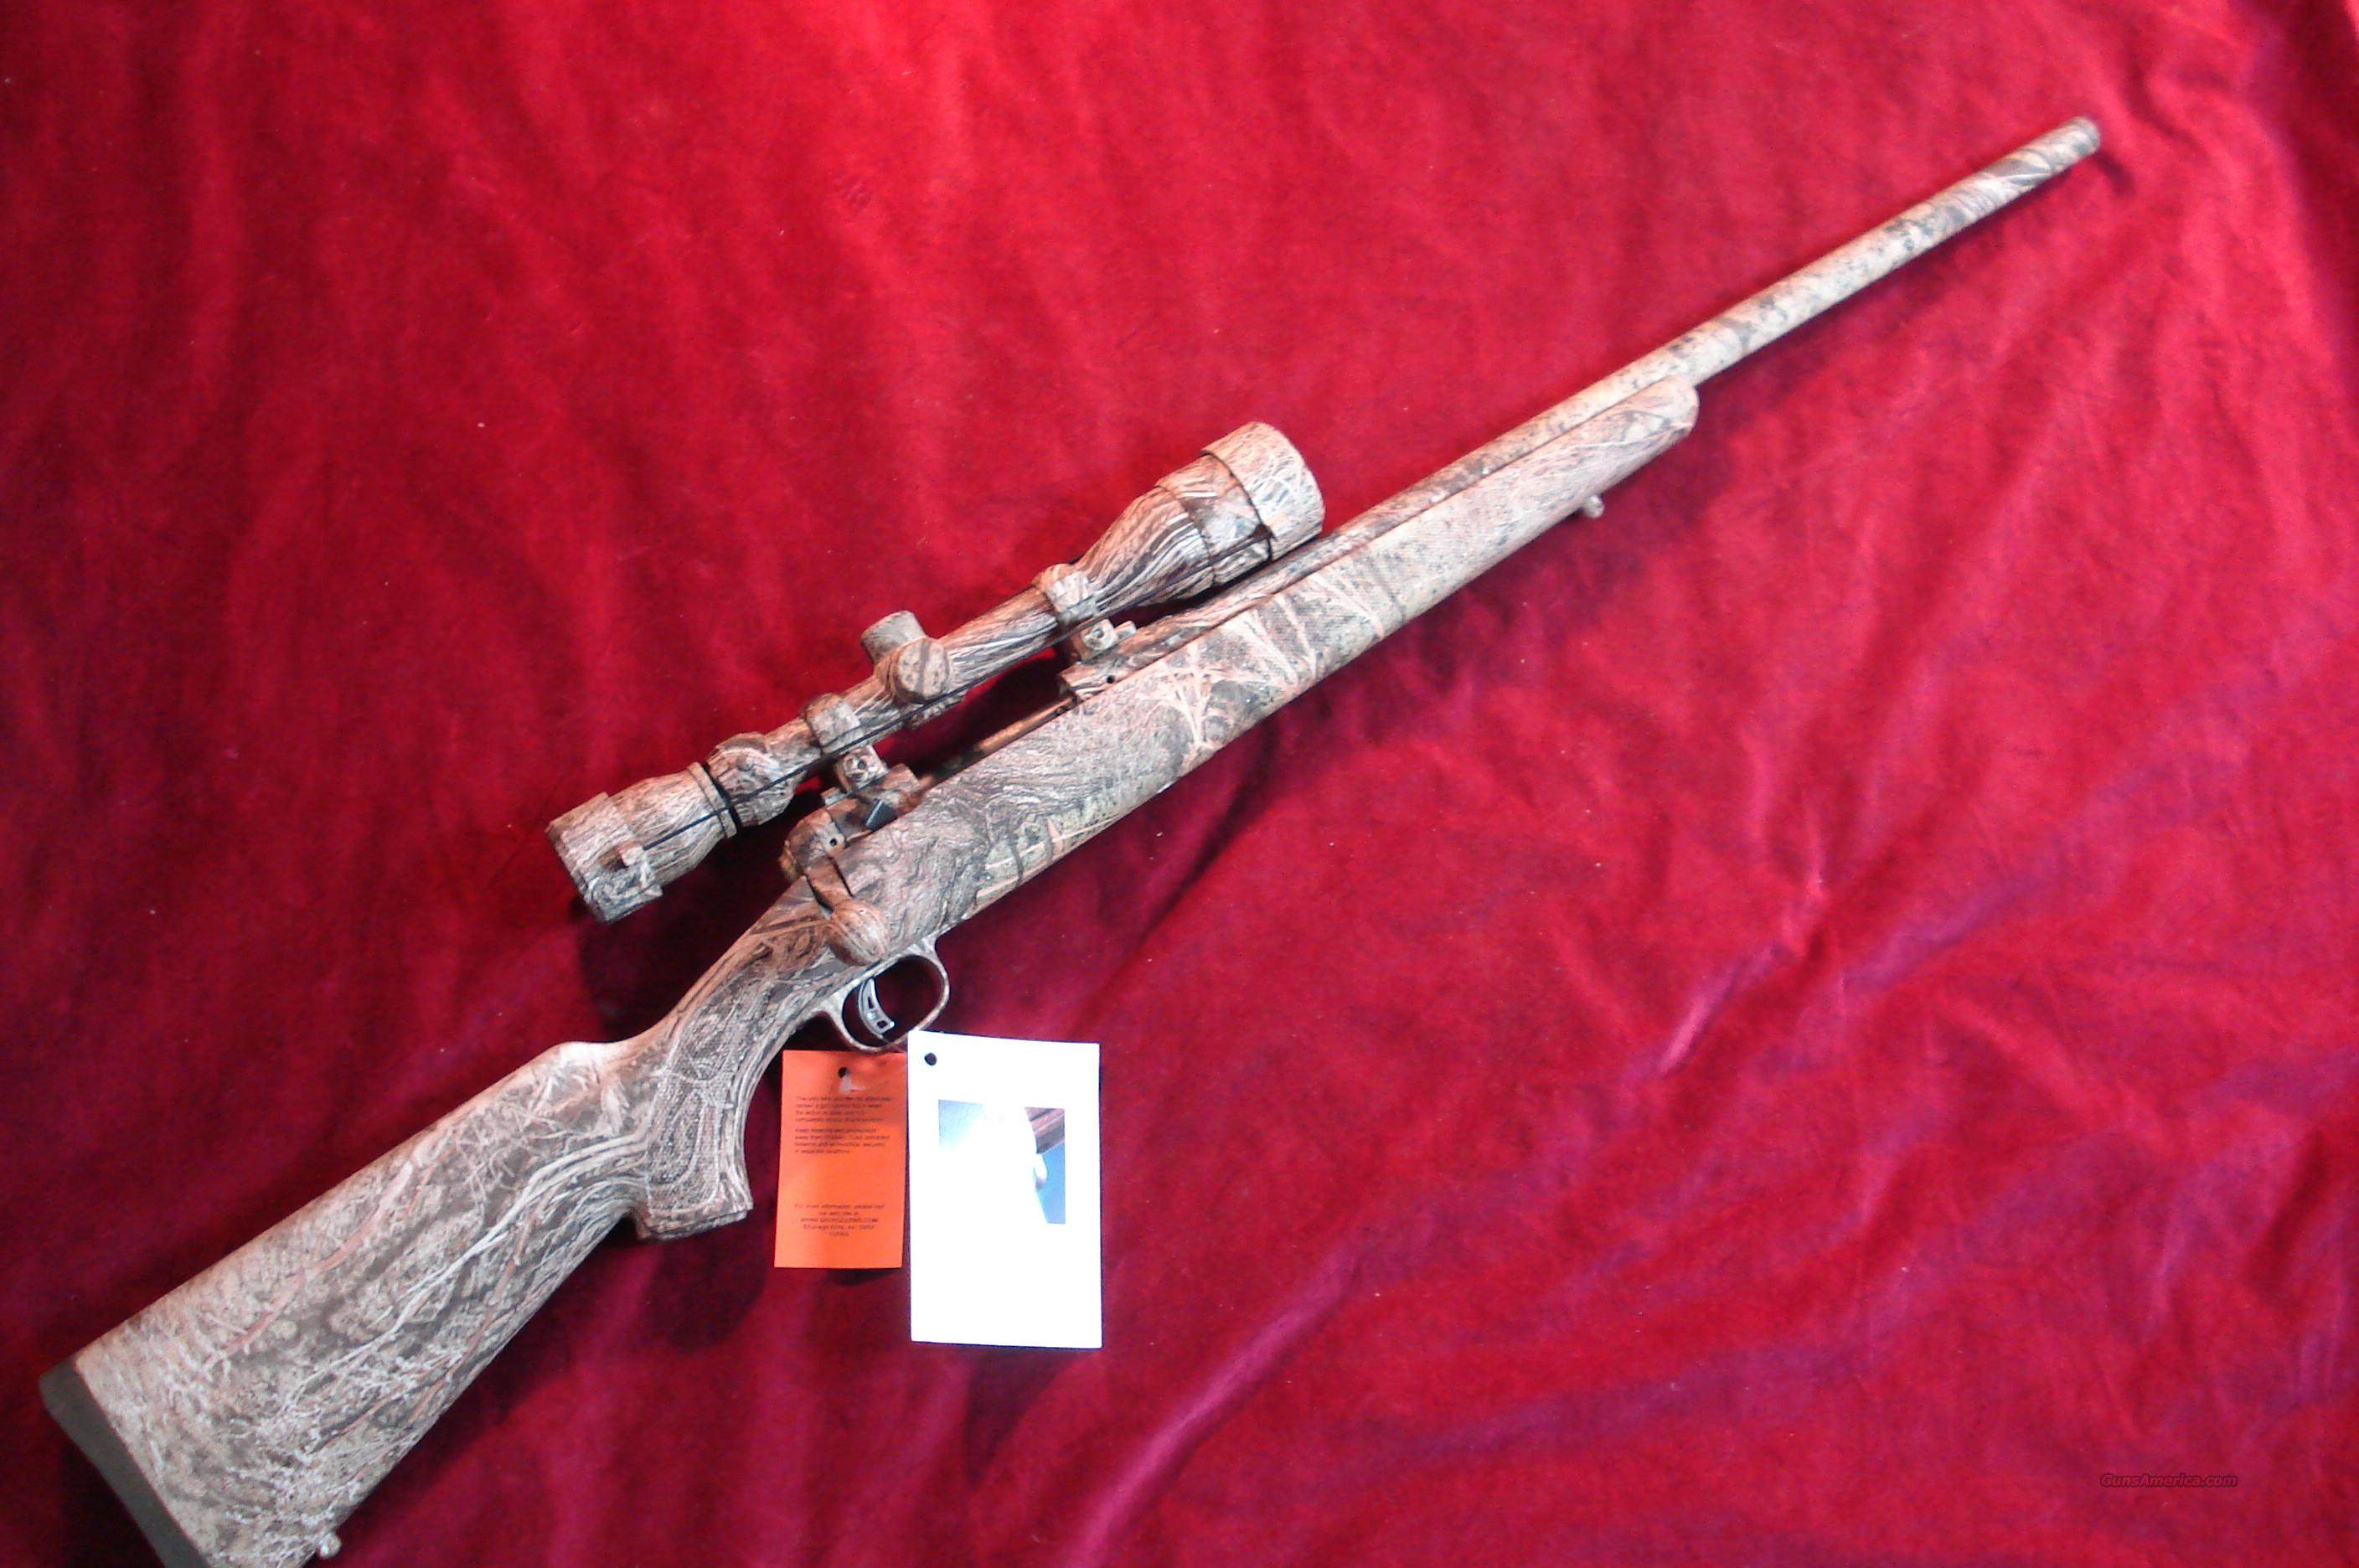 SAVAGE MODEL 10XP PREDATOR HUNTER MOSSY OAK BRUSH CAMO 22-250CAL. ACCUTRIGGER W/SCOPE NEW  Guns > Rifles > Savage Rifles > Accutrigger Models > Sporting